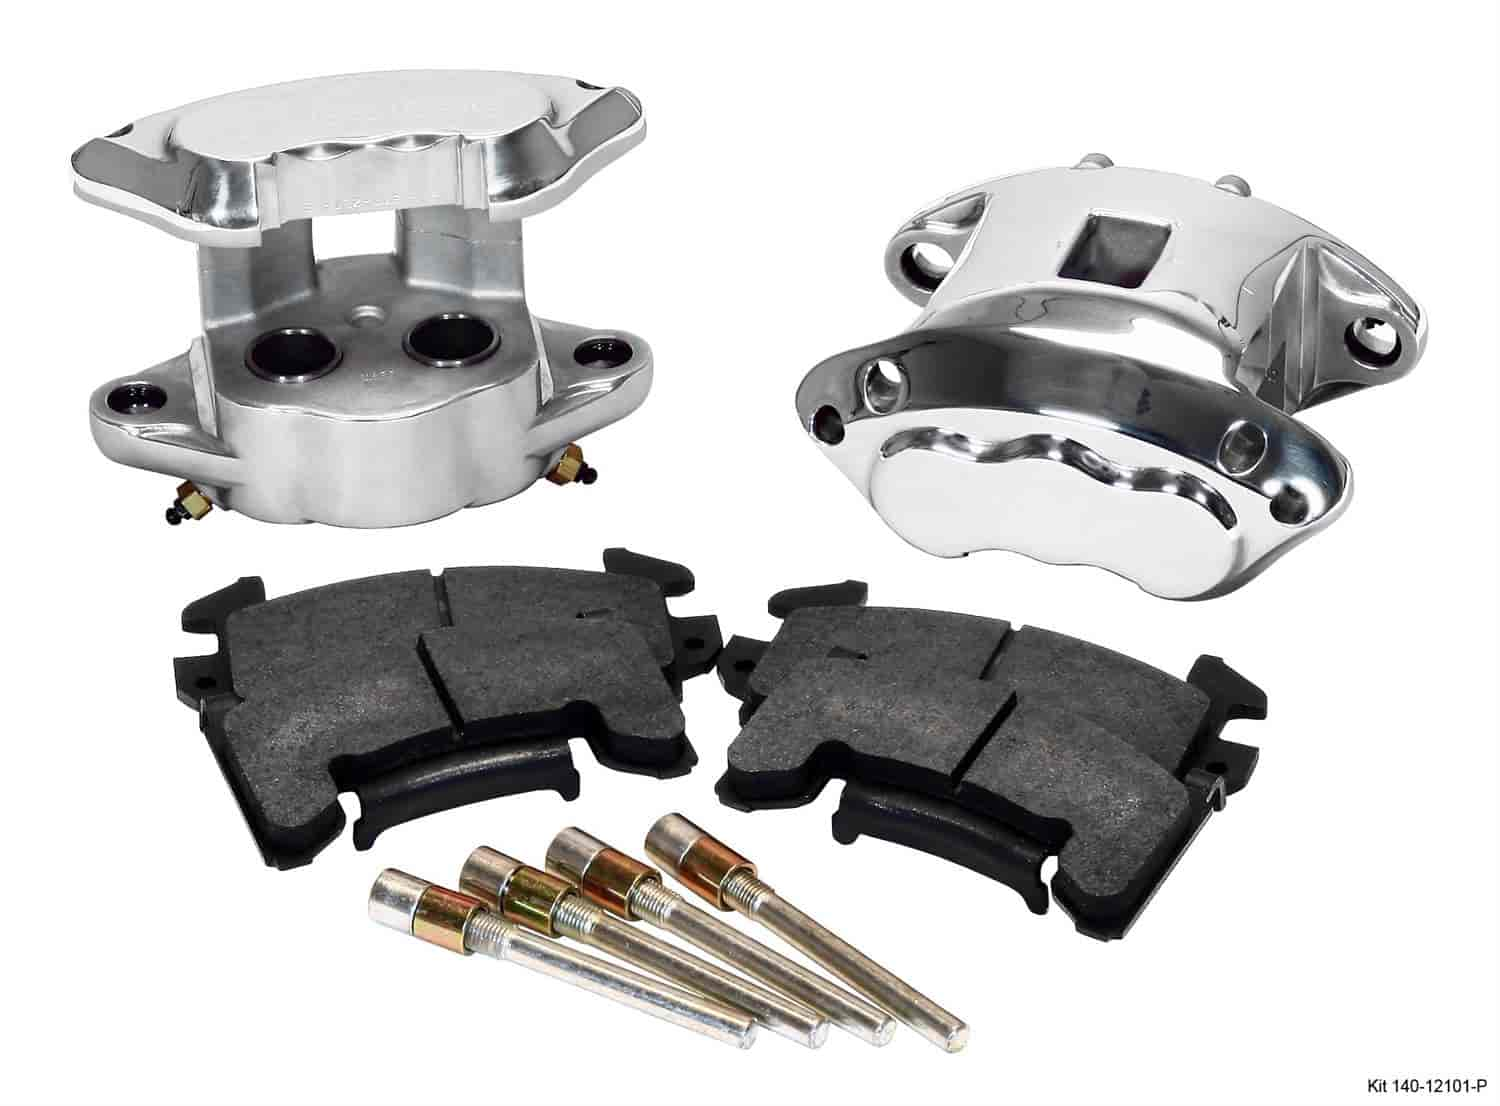 Wilwood 140-12101-P - Wilwood D154 Rear Caliper Kits